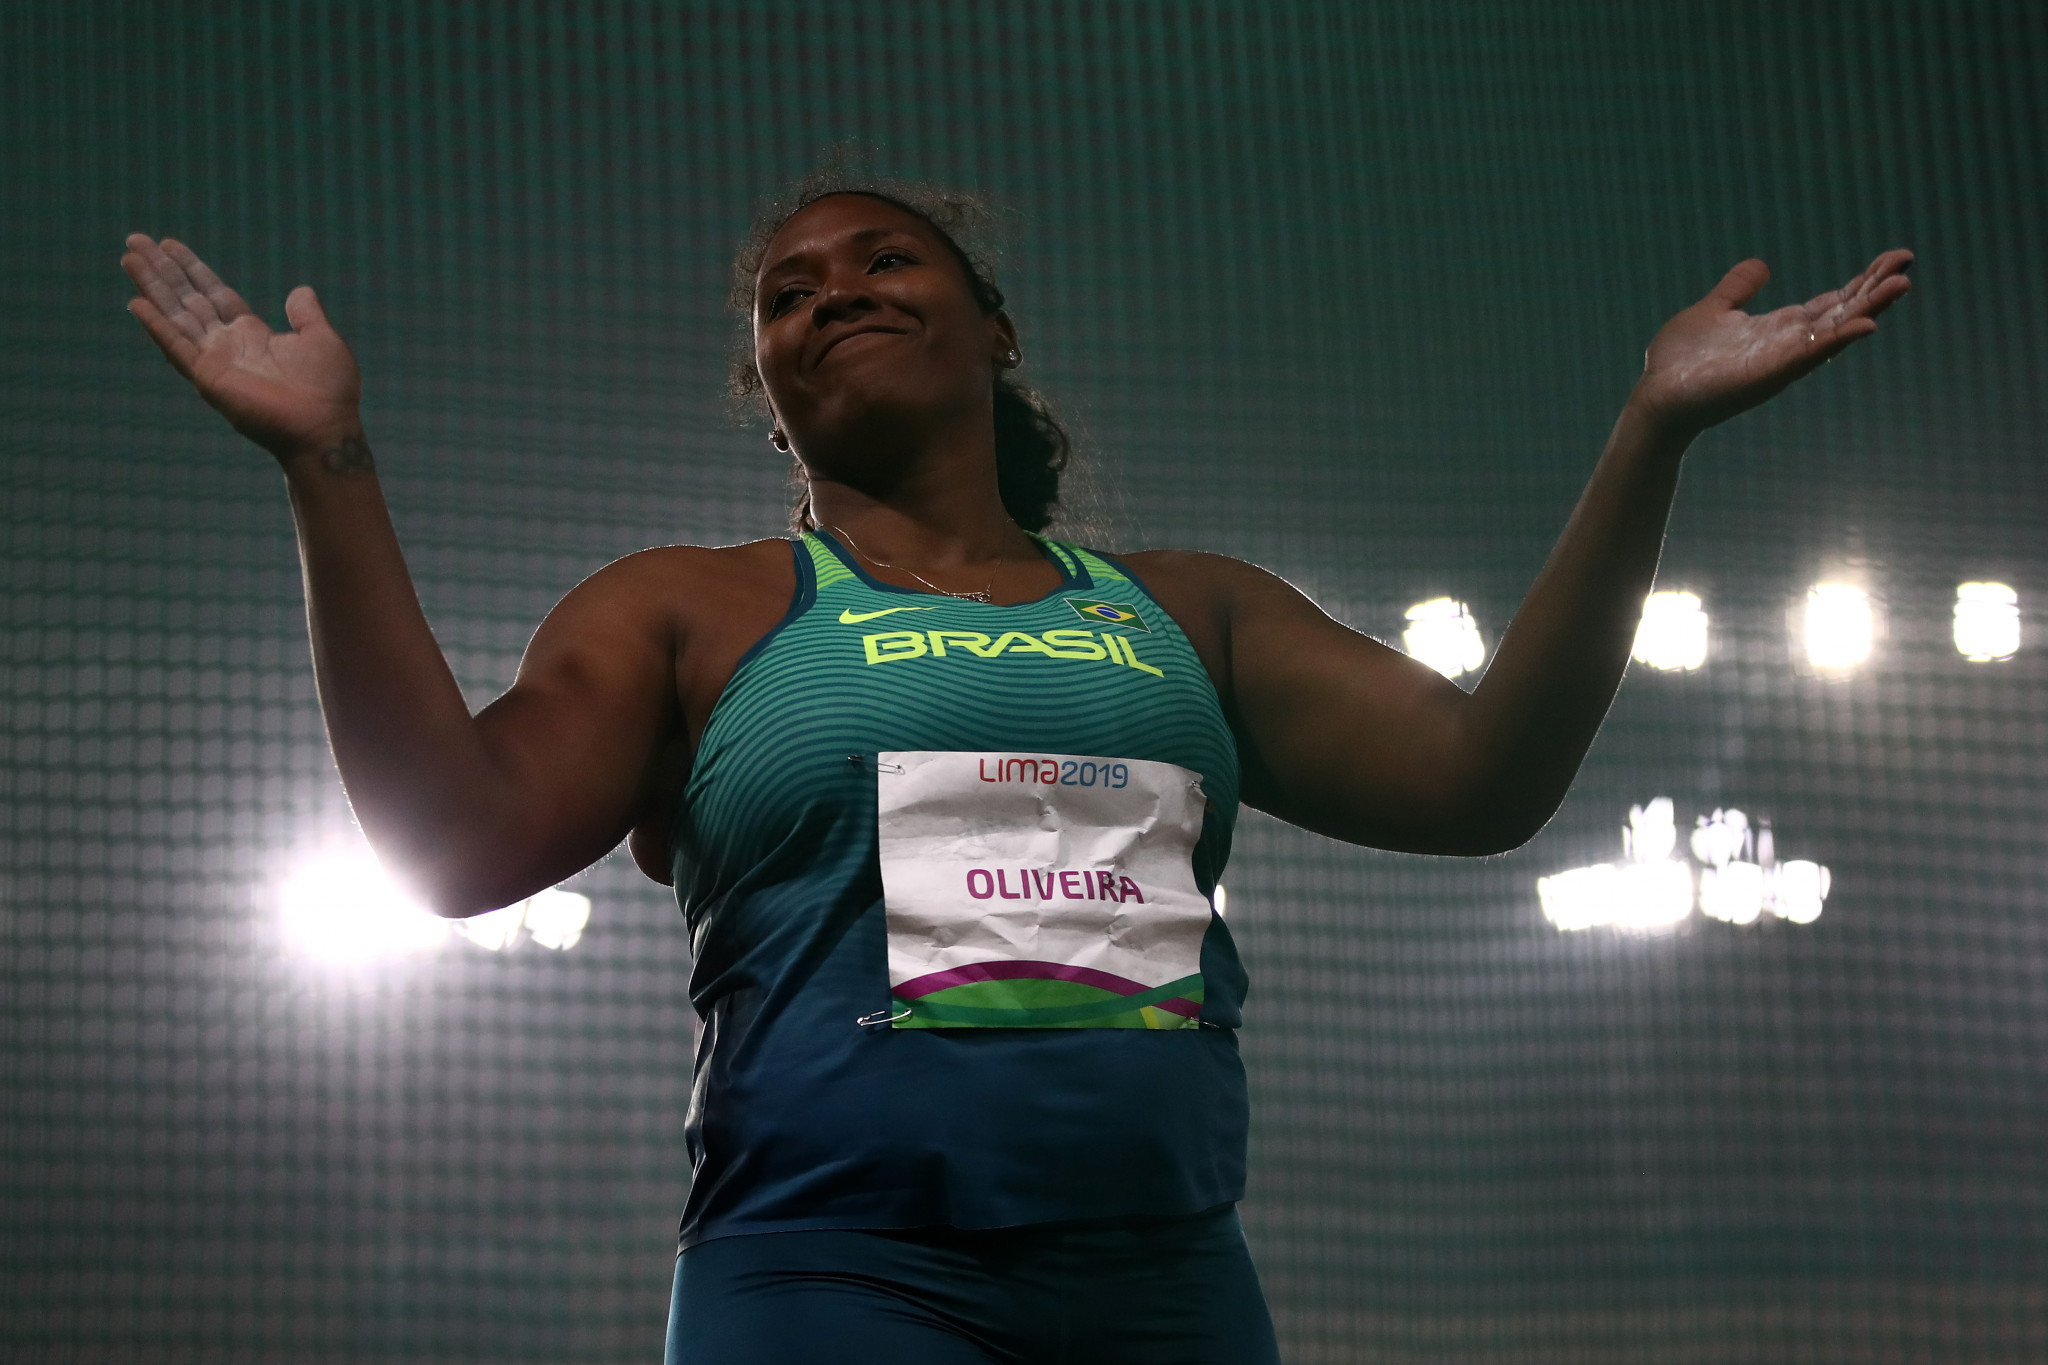 Lima 2019 discus silver medallist provisionally suspended after positive test